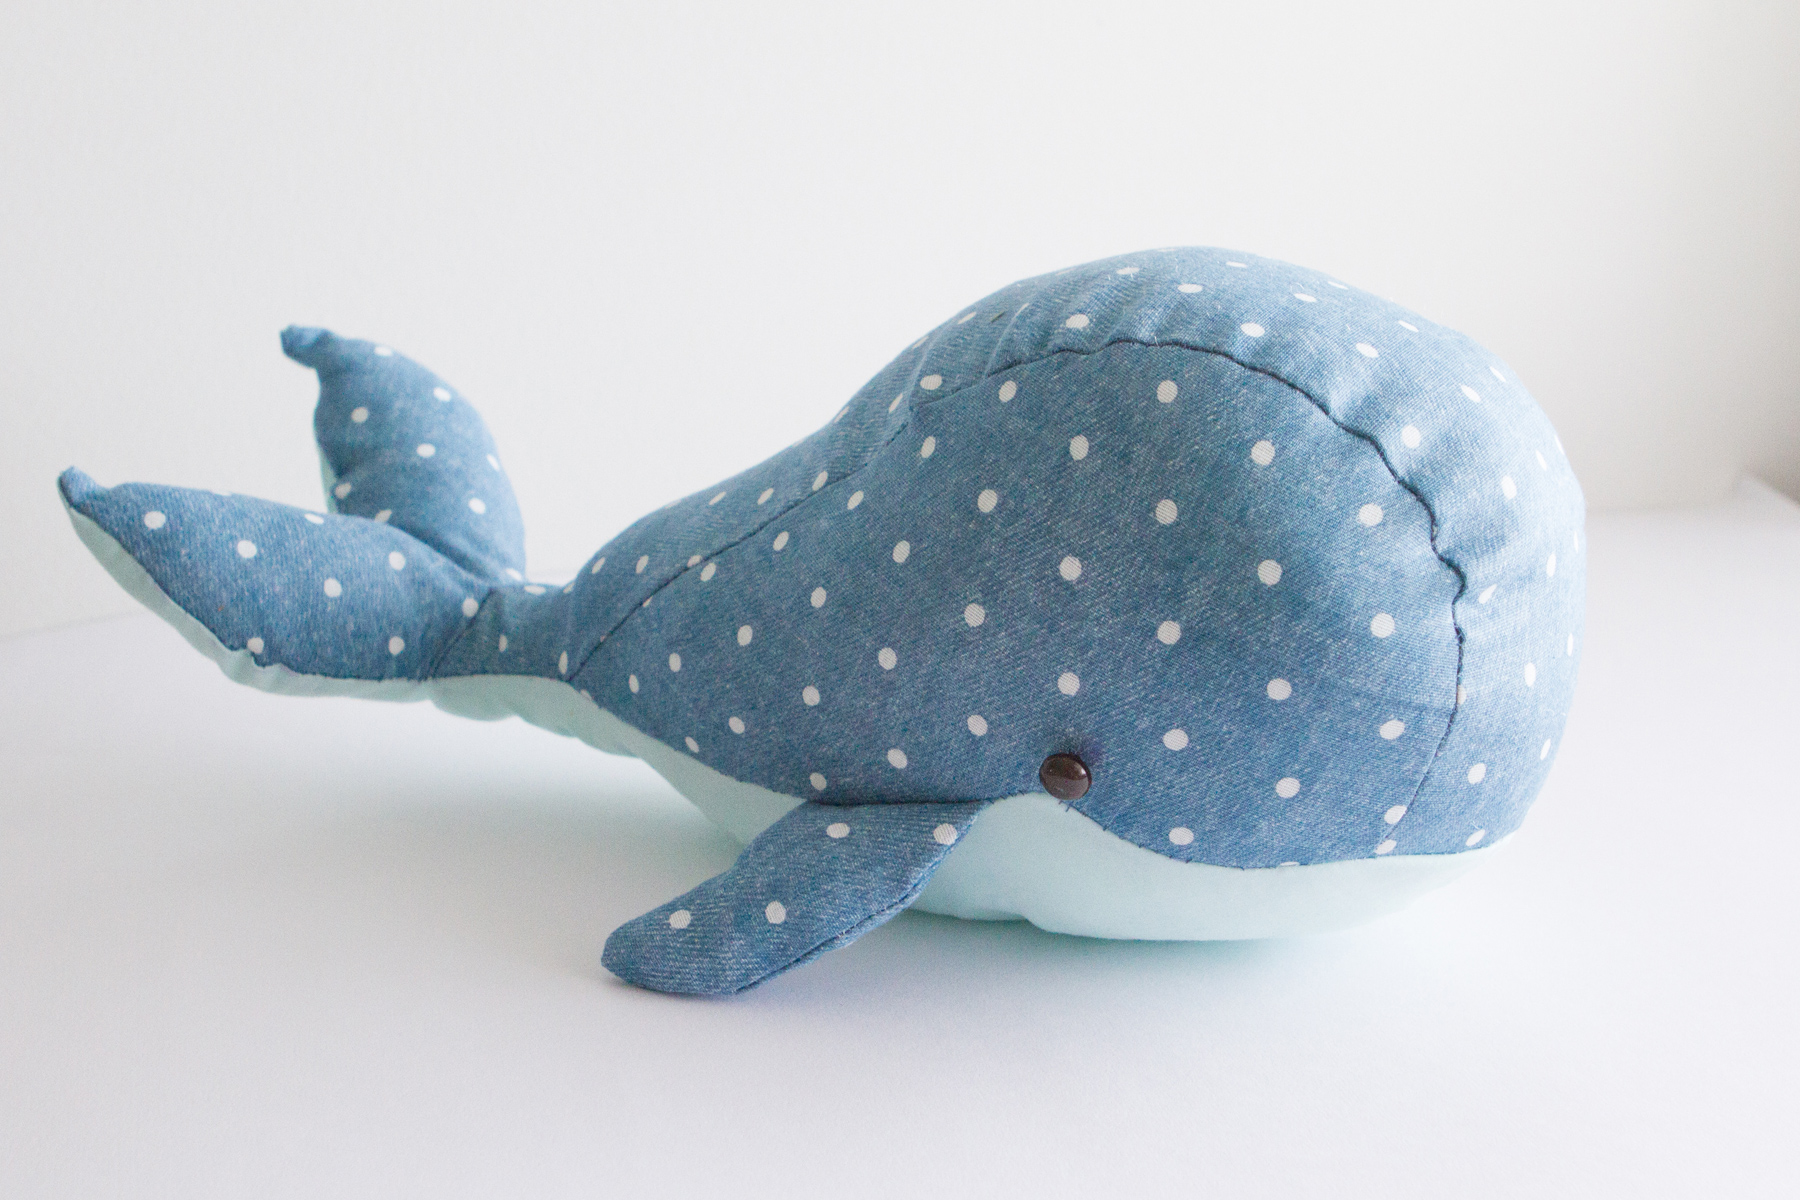 The whale I made, I'm in love.